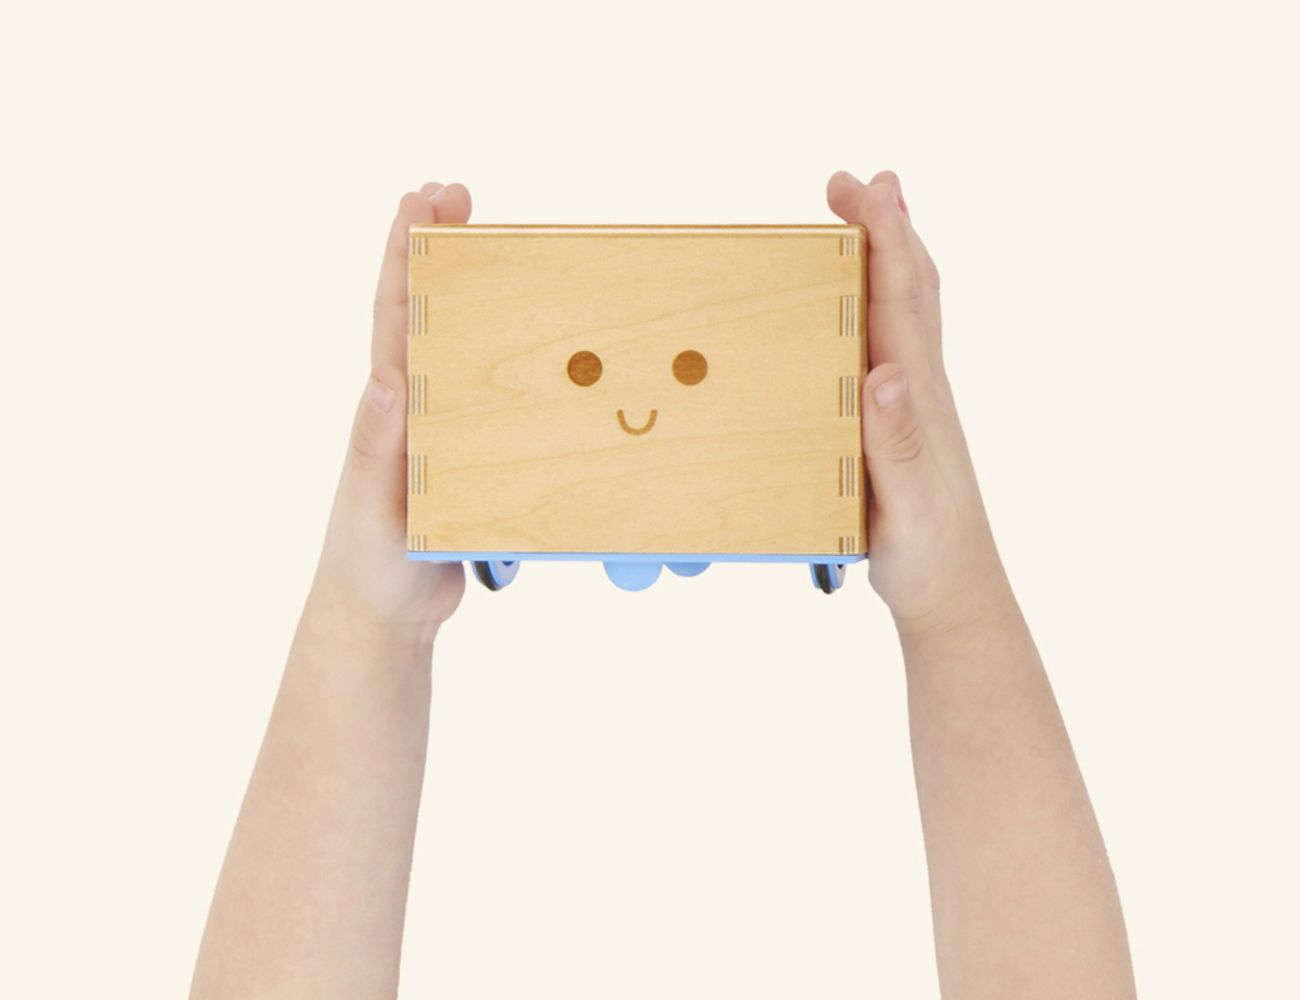 Cubetto: Off-Screen Coding Toy for Kids